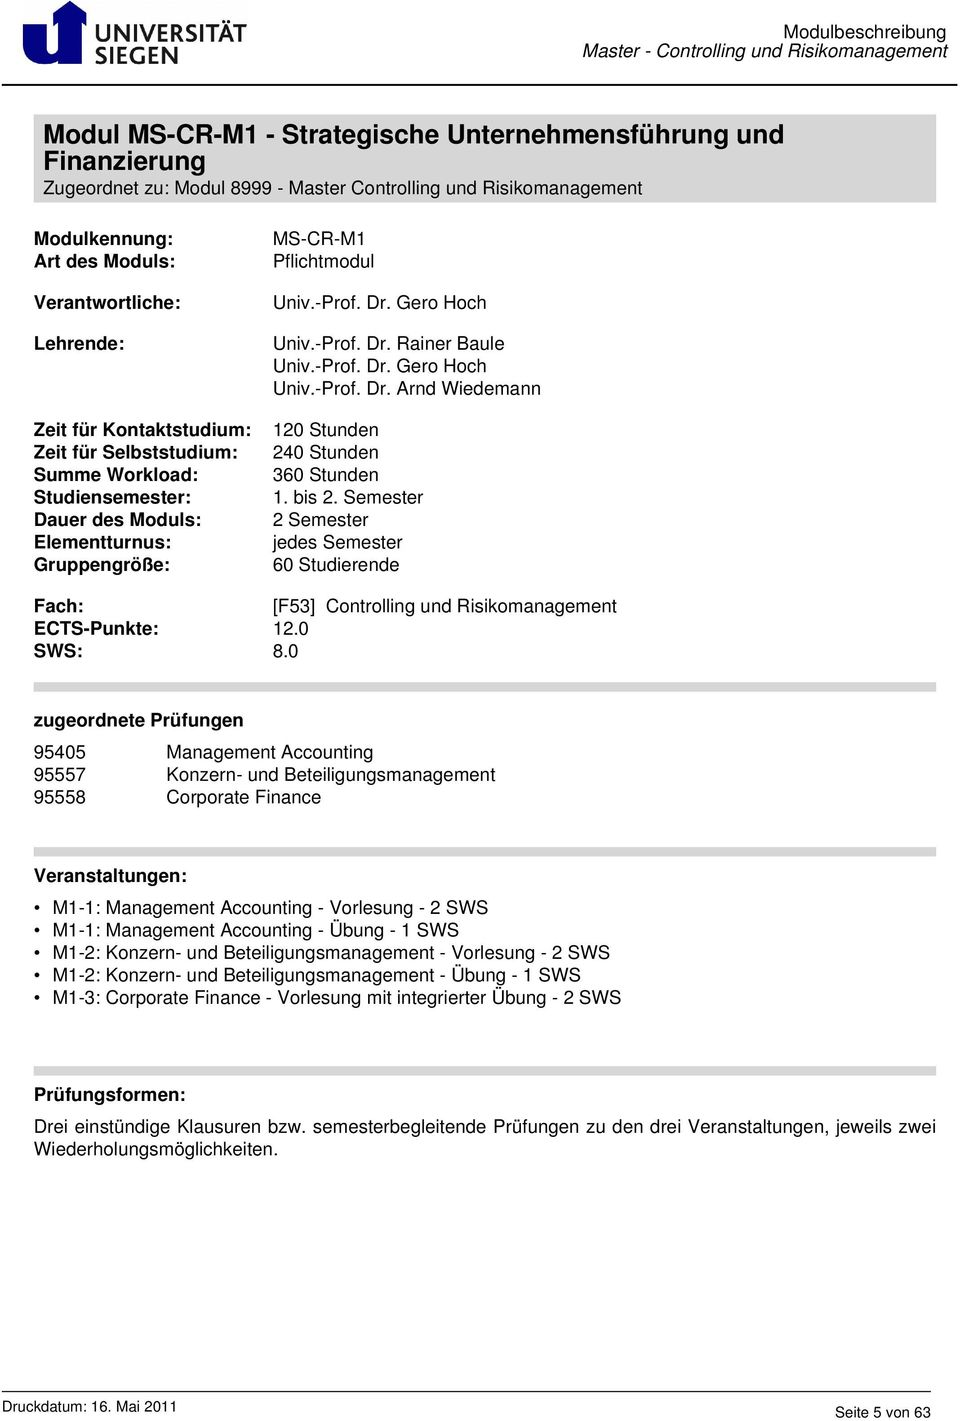 Semester 2 Semester jedes Semester 60 Studierende [F53] Controlling und Risikomanagement ECTS-Punkte: 12.0 SWS: 8.